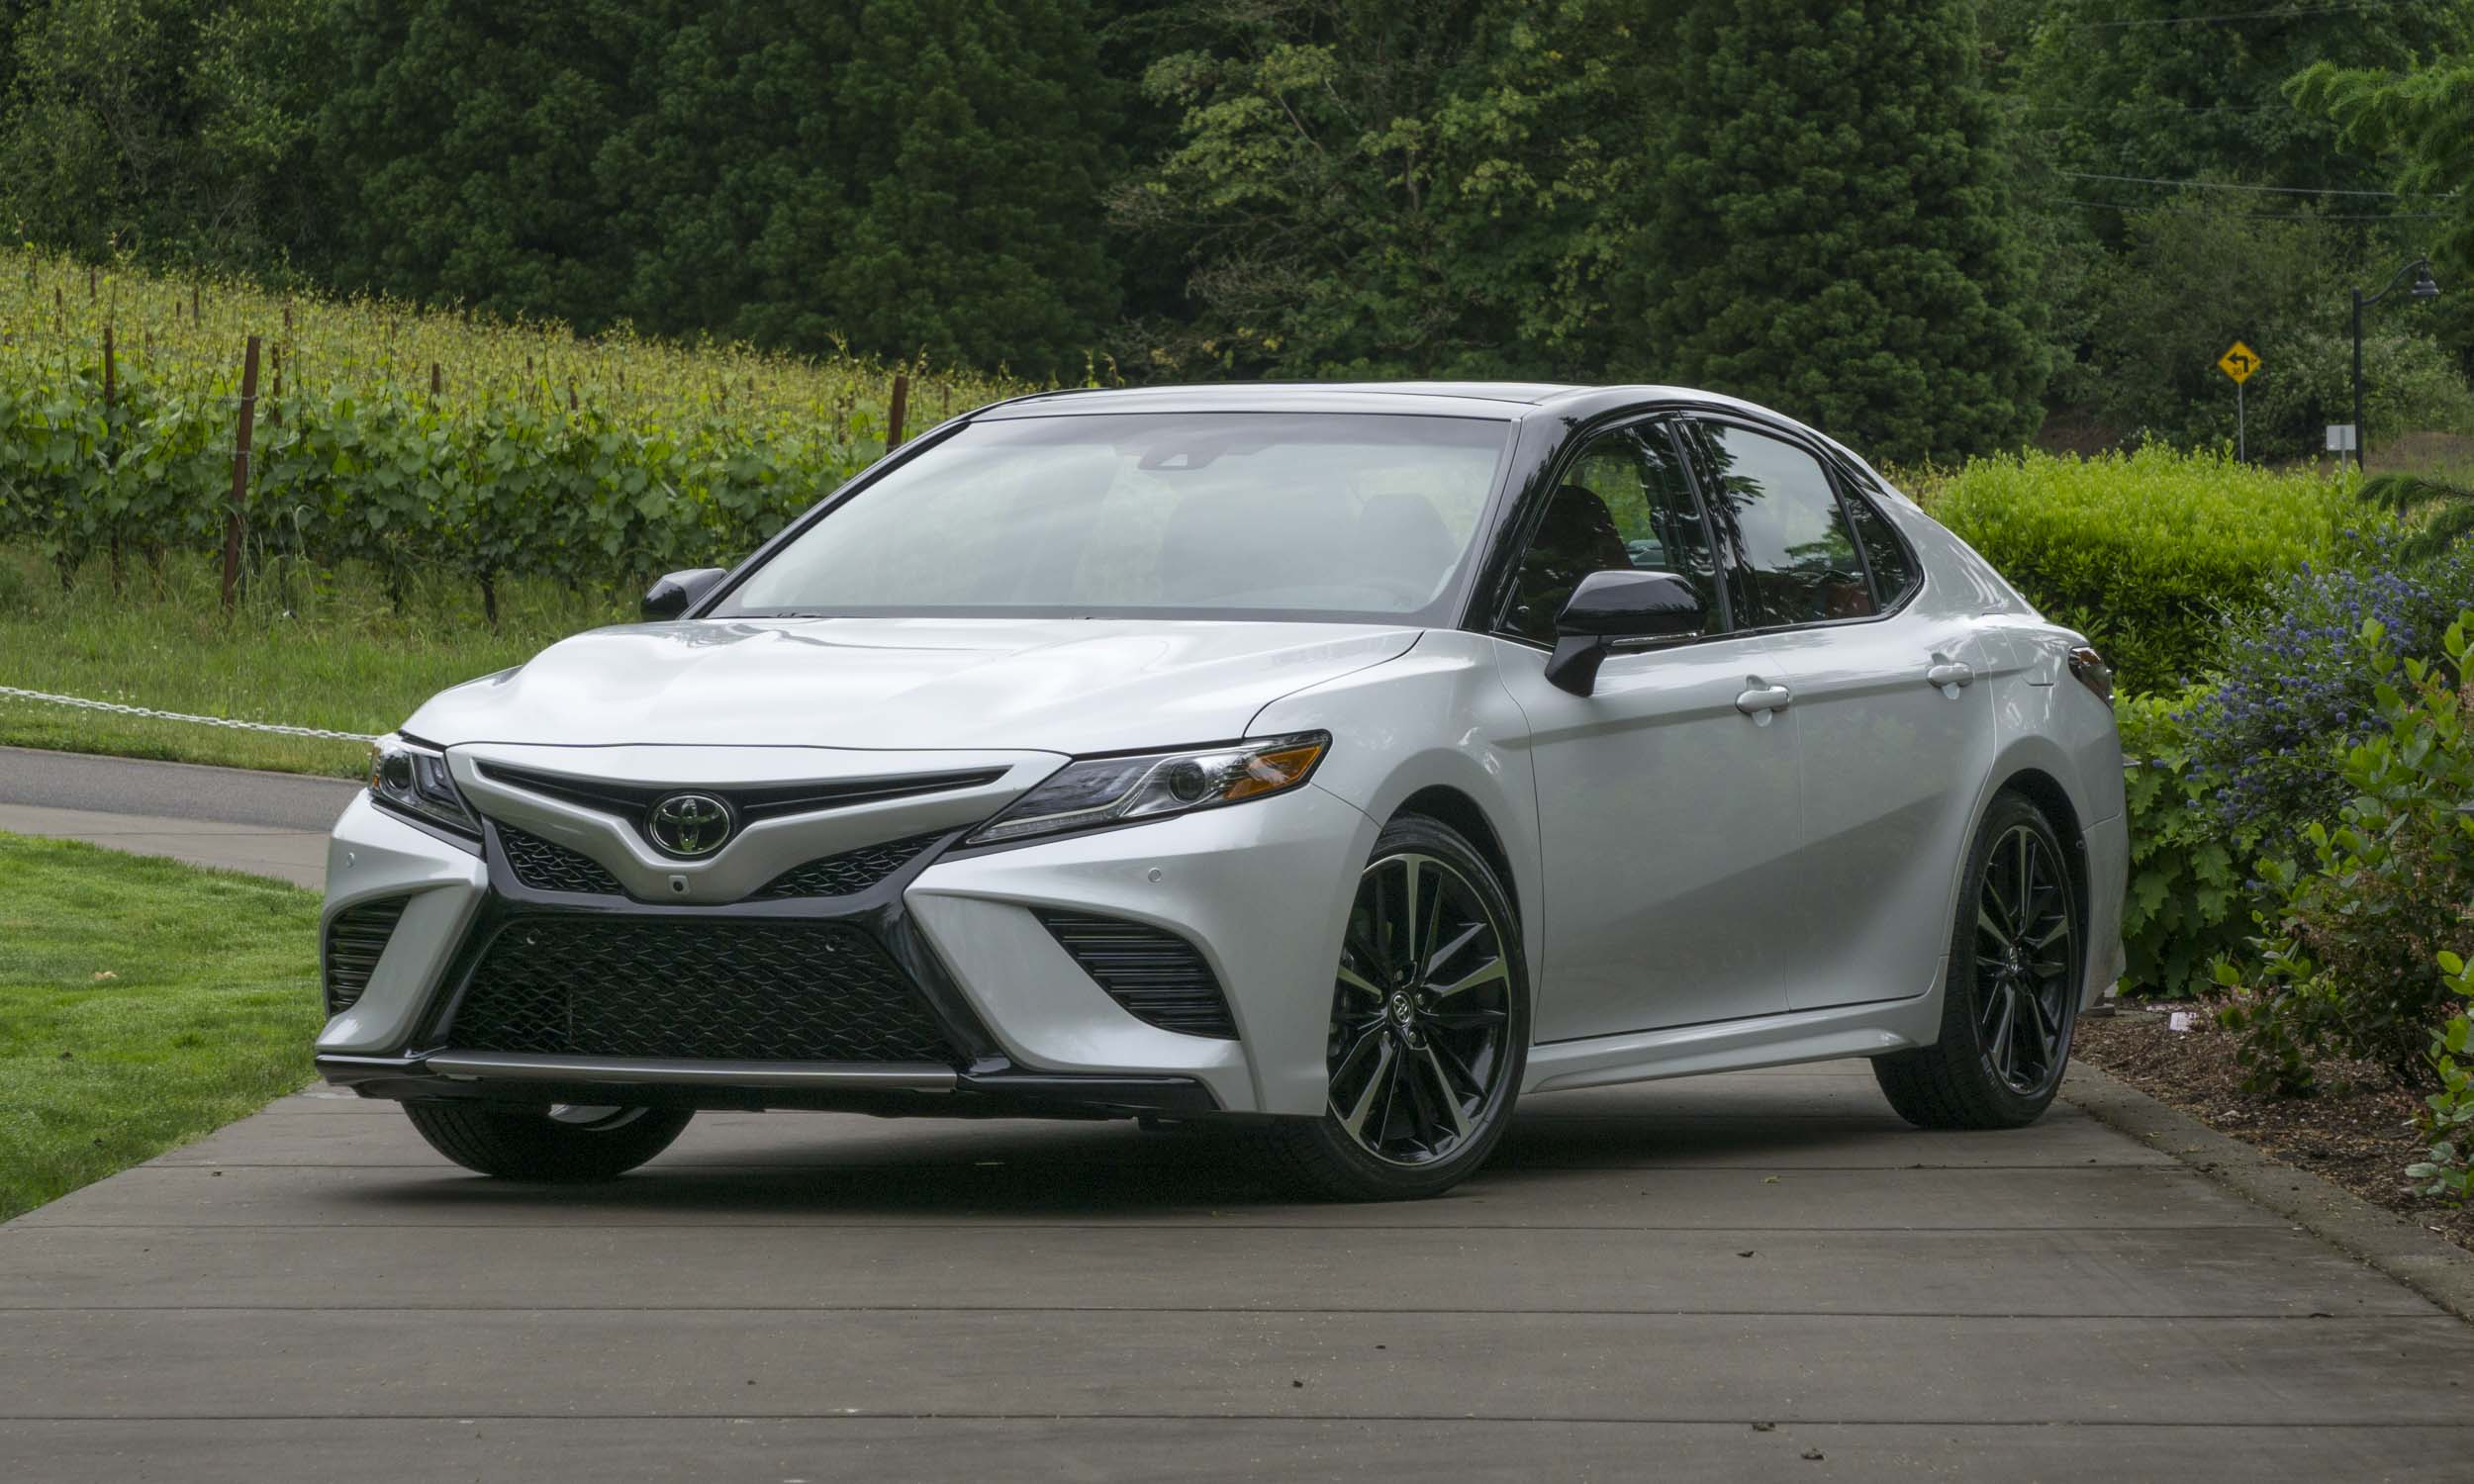 Xse 2018 Camry >> 2018 Toyota Camry: First Drive Review - » AutoNXT